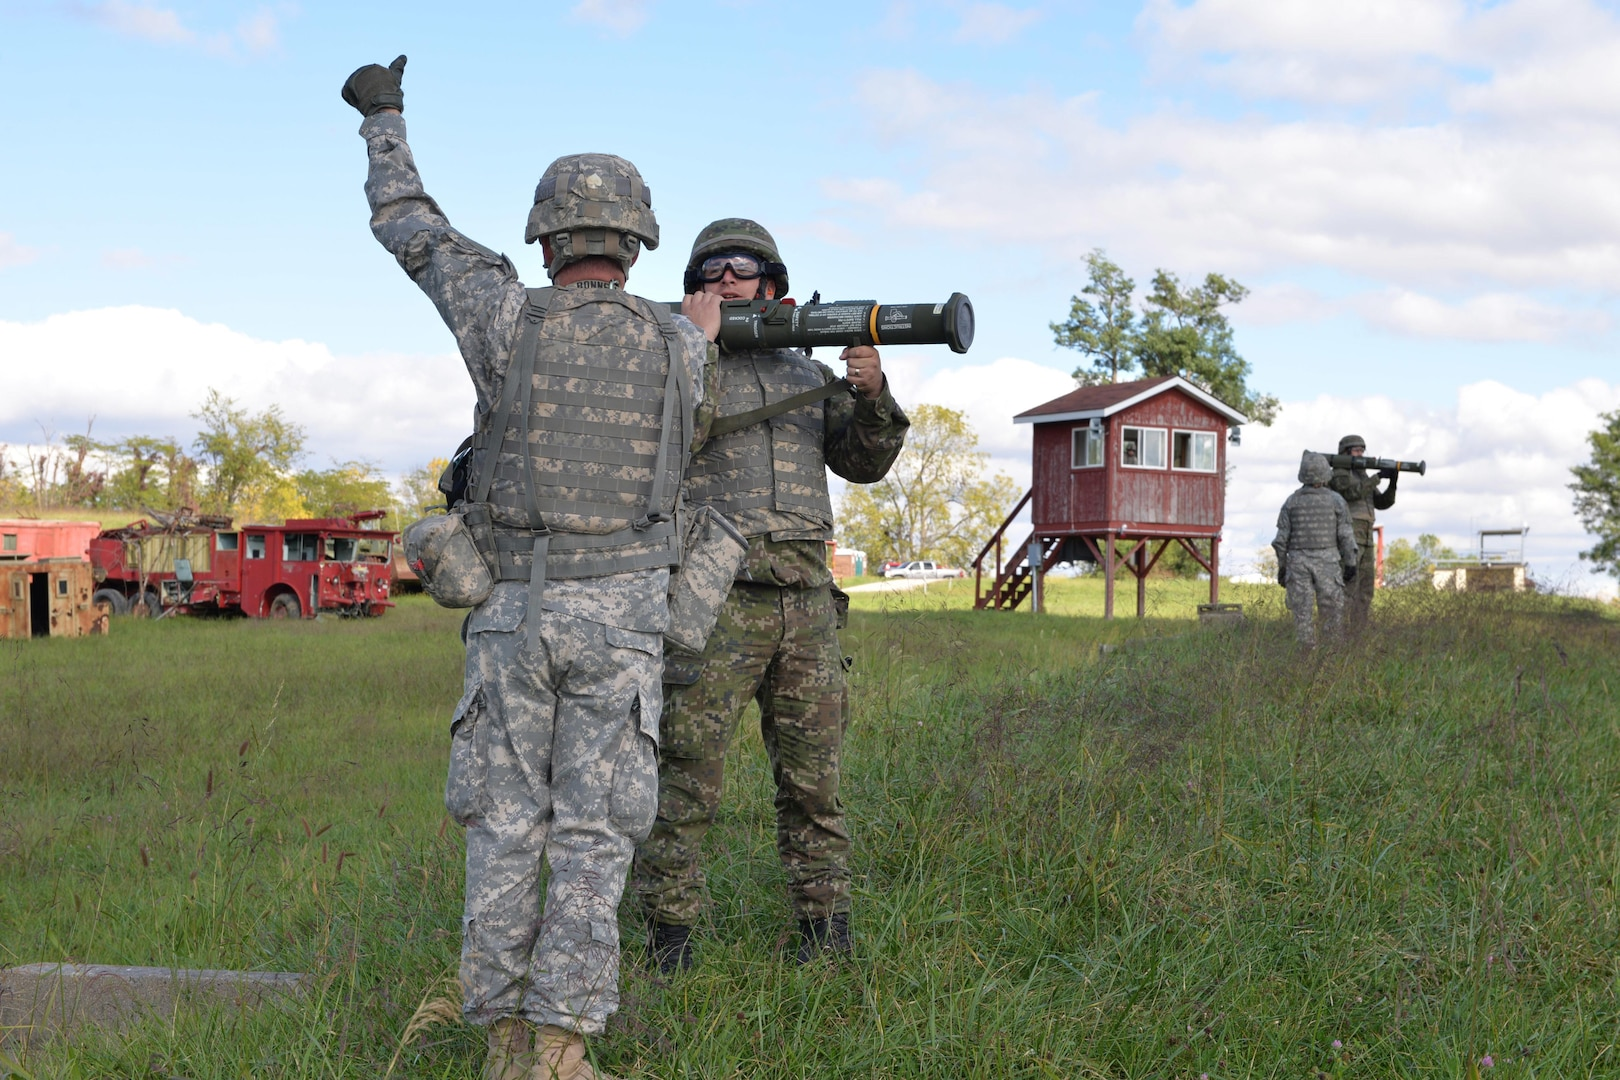 Soldiers from the Indiana National Guard and the Slovak Armed Forces prepare for firing an AT-4 weapon at Camp Atterbury, during the Indiana-Slovakia Exchange, Sept. 18, 2015.